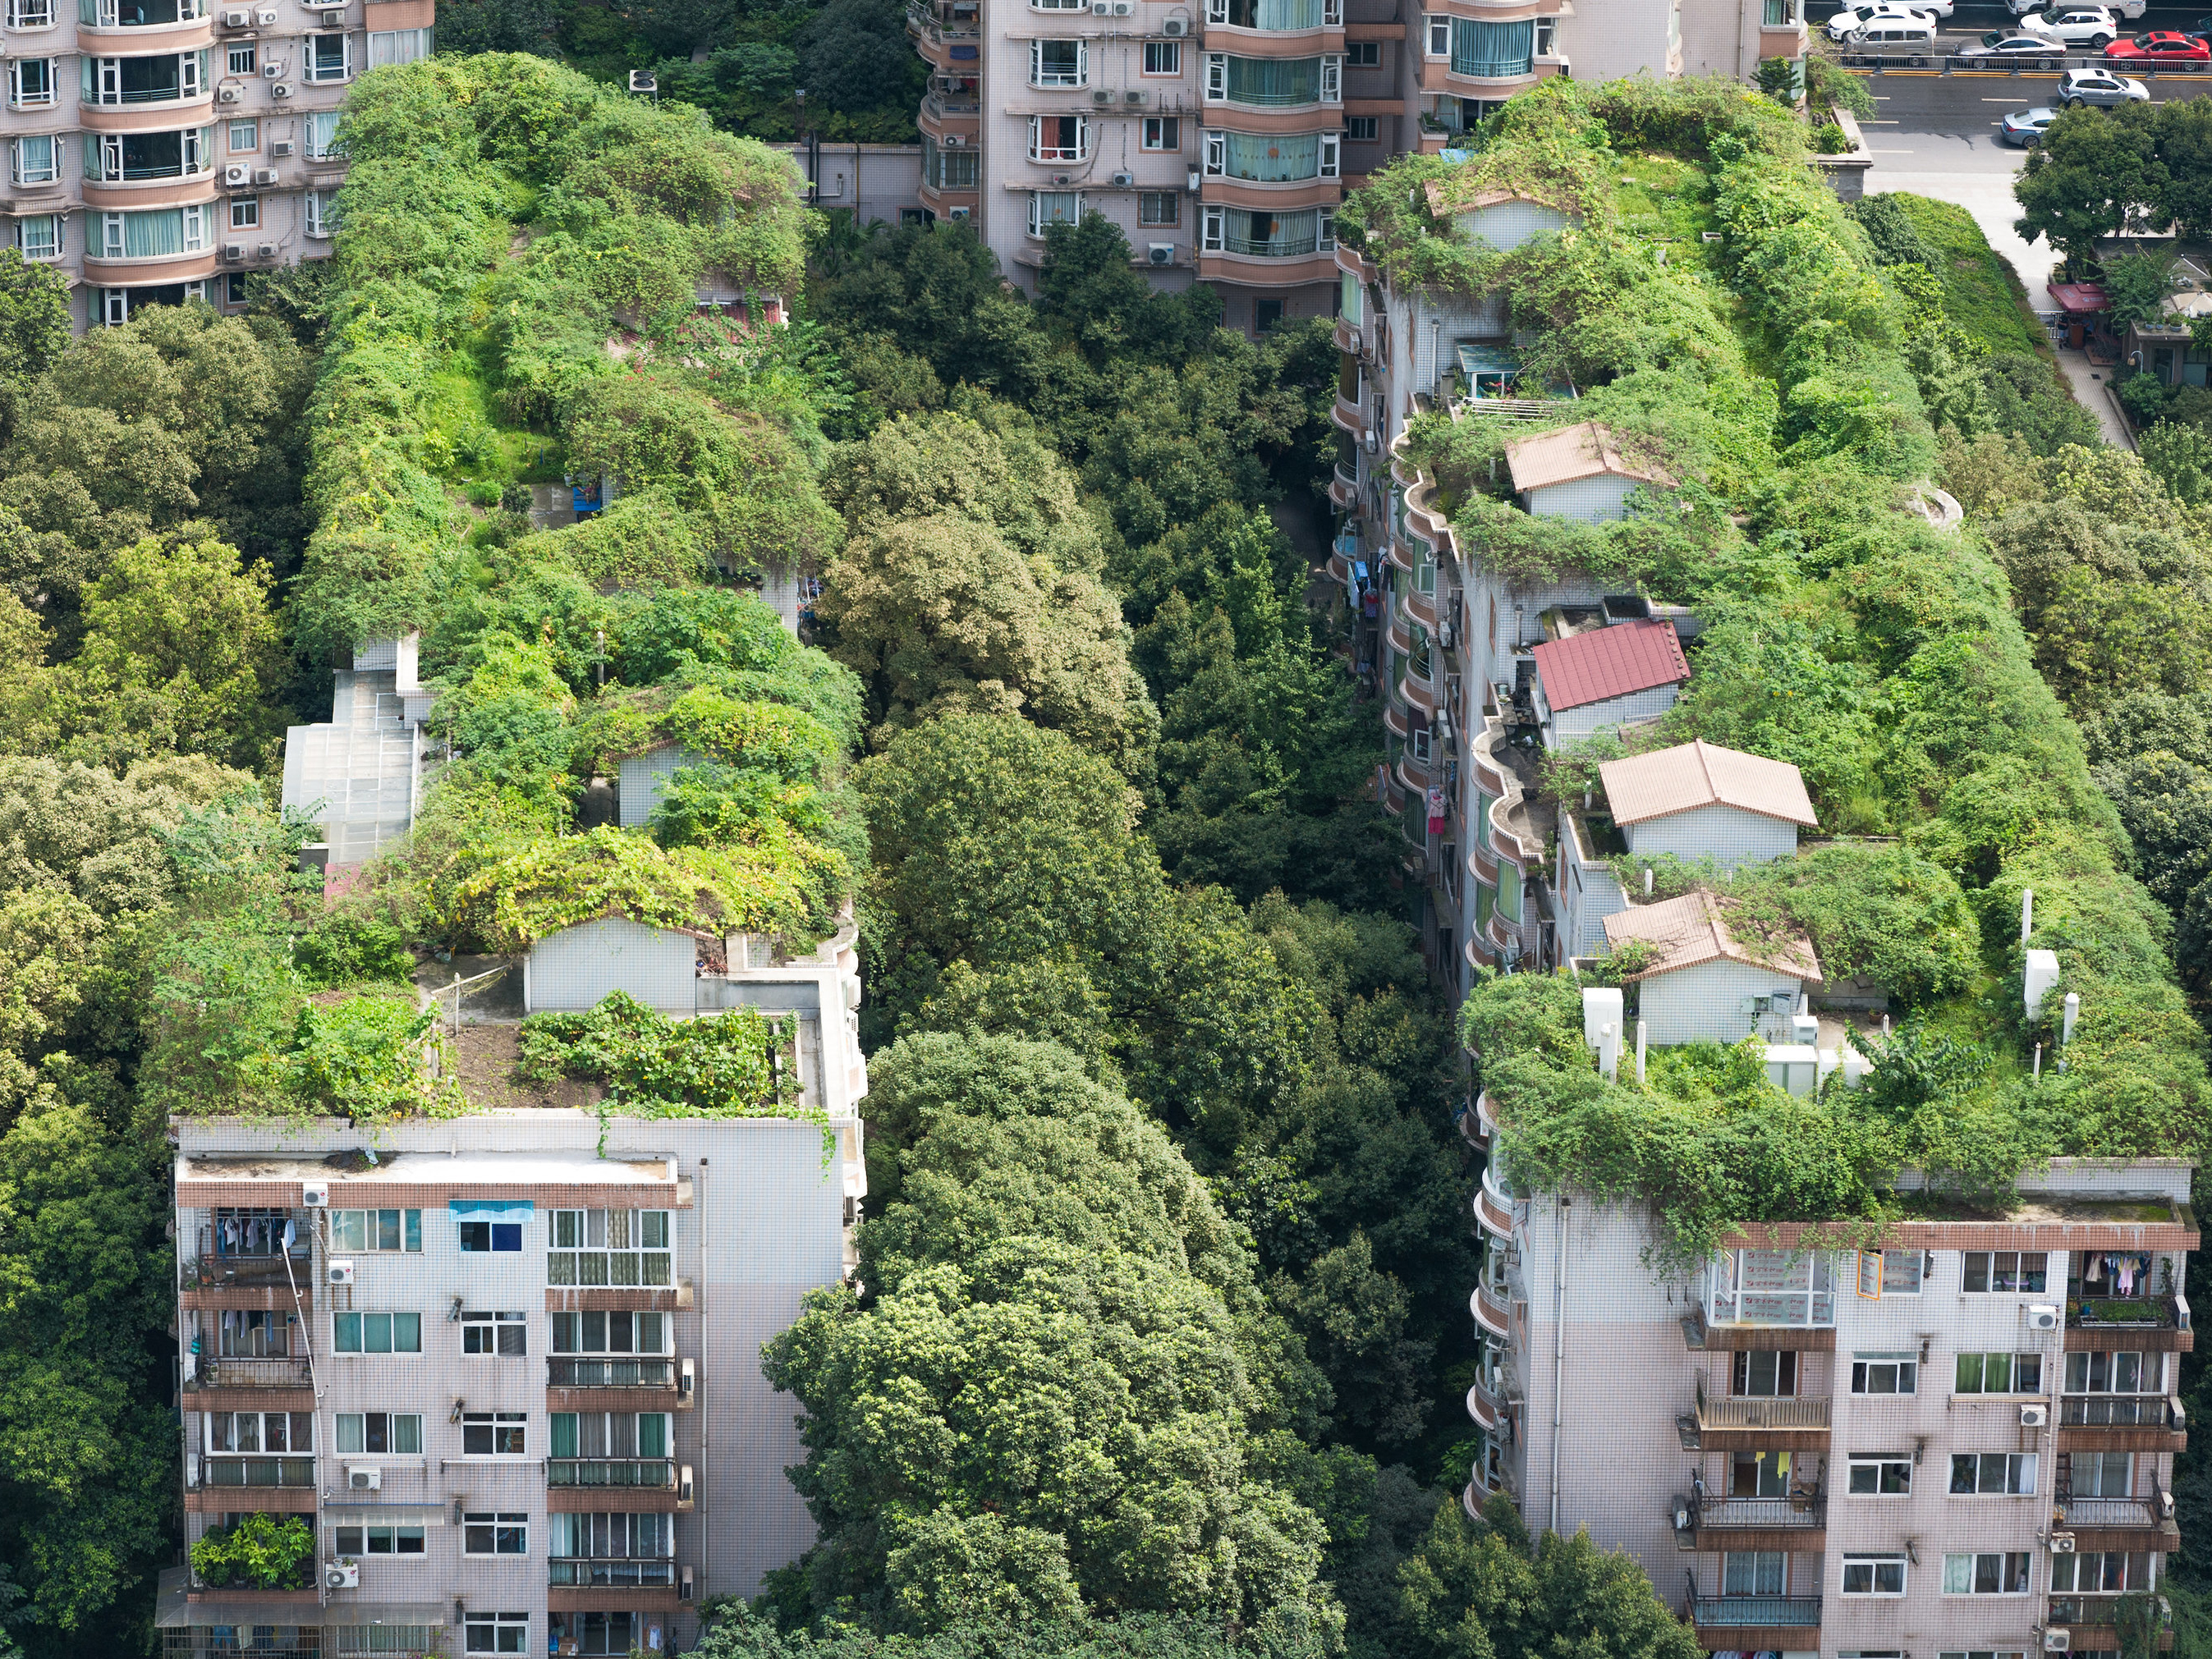 Garden roofs (like these in Chengdu, in China's Sichuan province) need maintenance and community involvement. Image: shutterstock.com